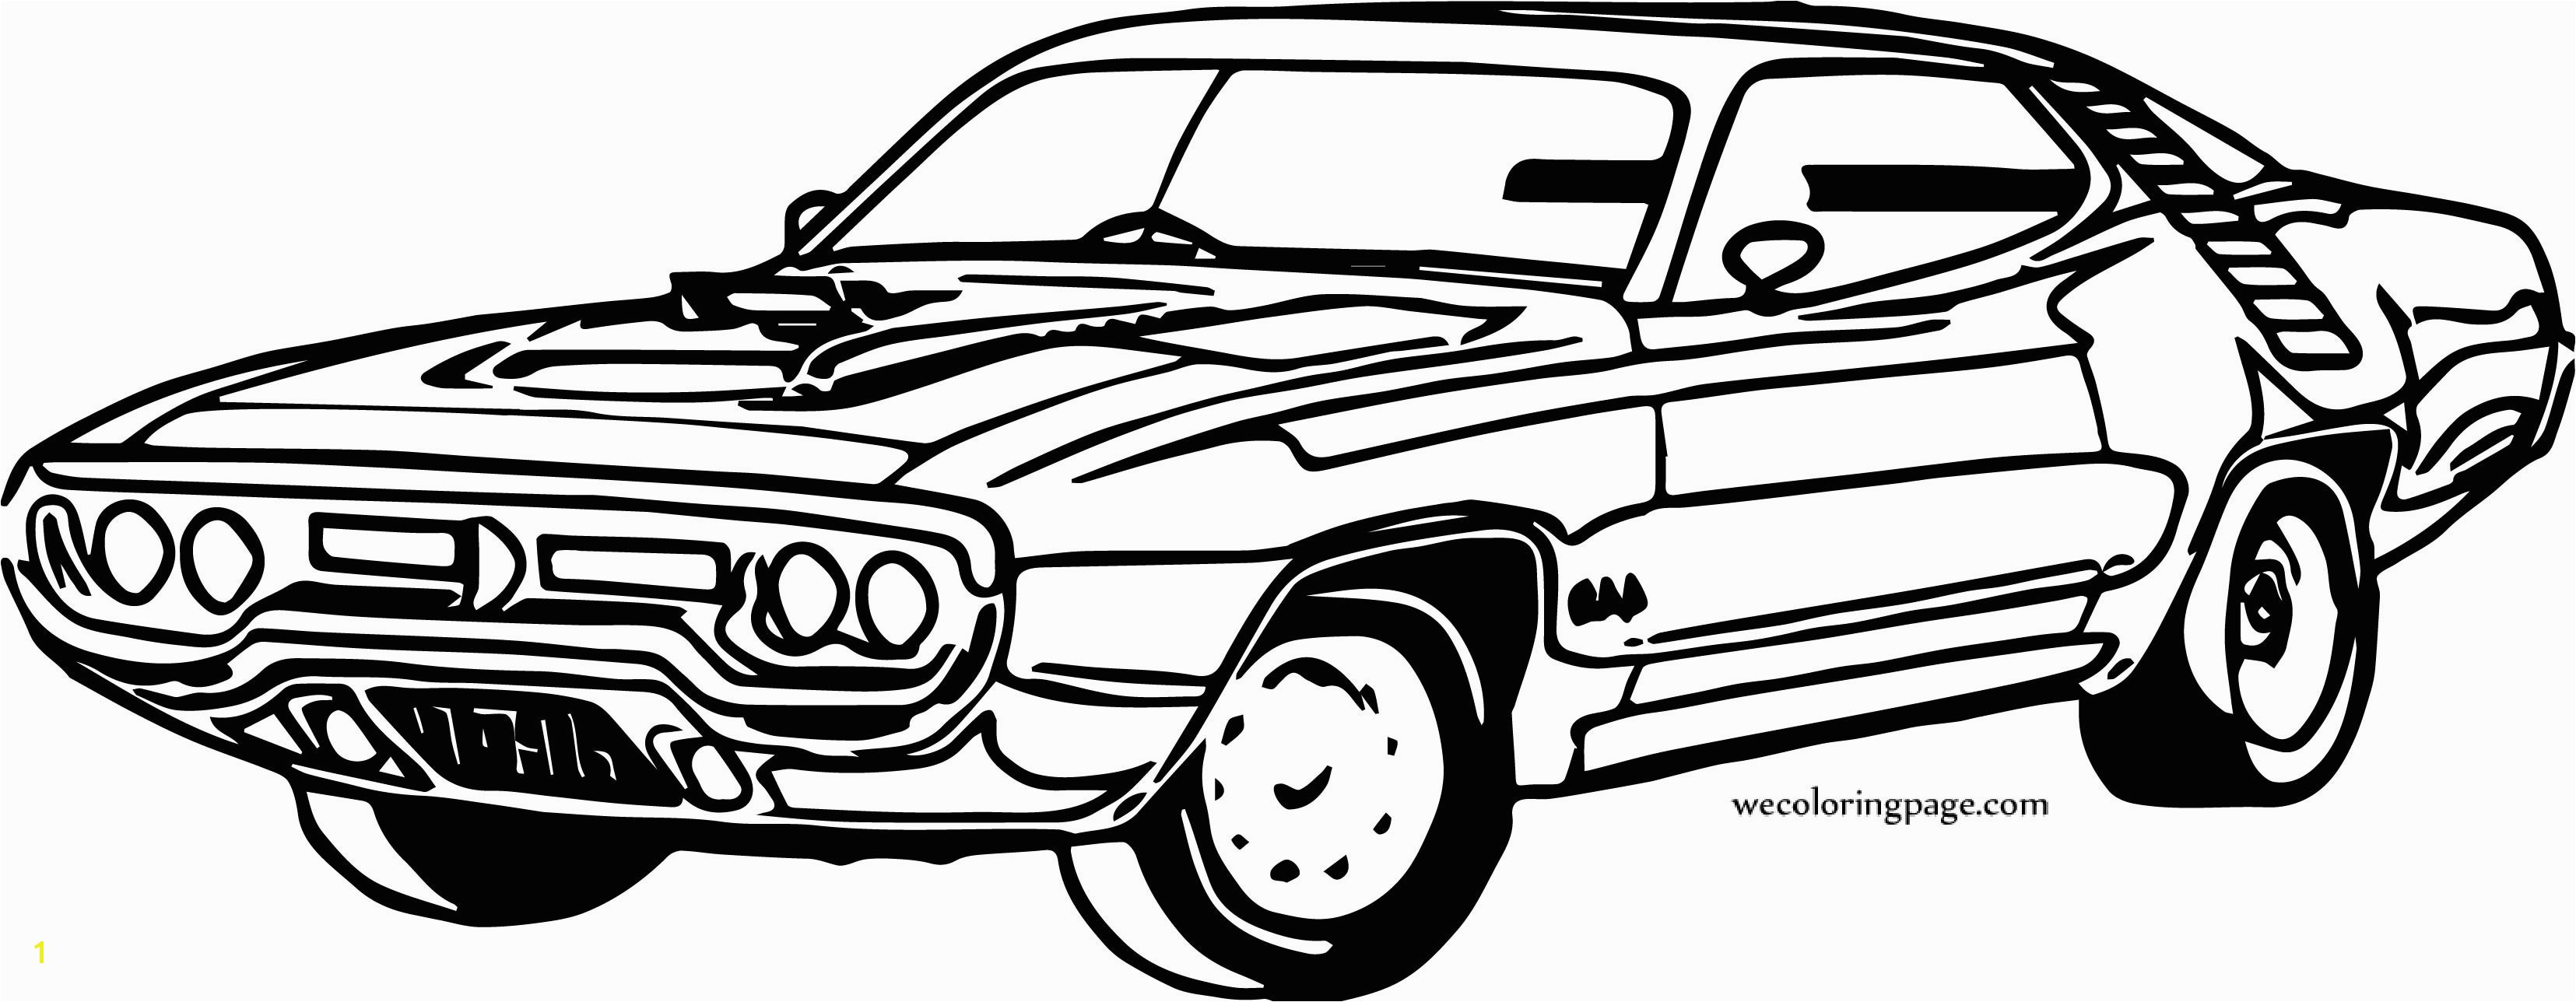 Muscle Car Coloring Pages Inspirationa Cartoon Muscle Cars Coloring Pages Worksheet & Coloring Pages